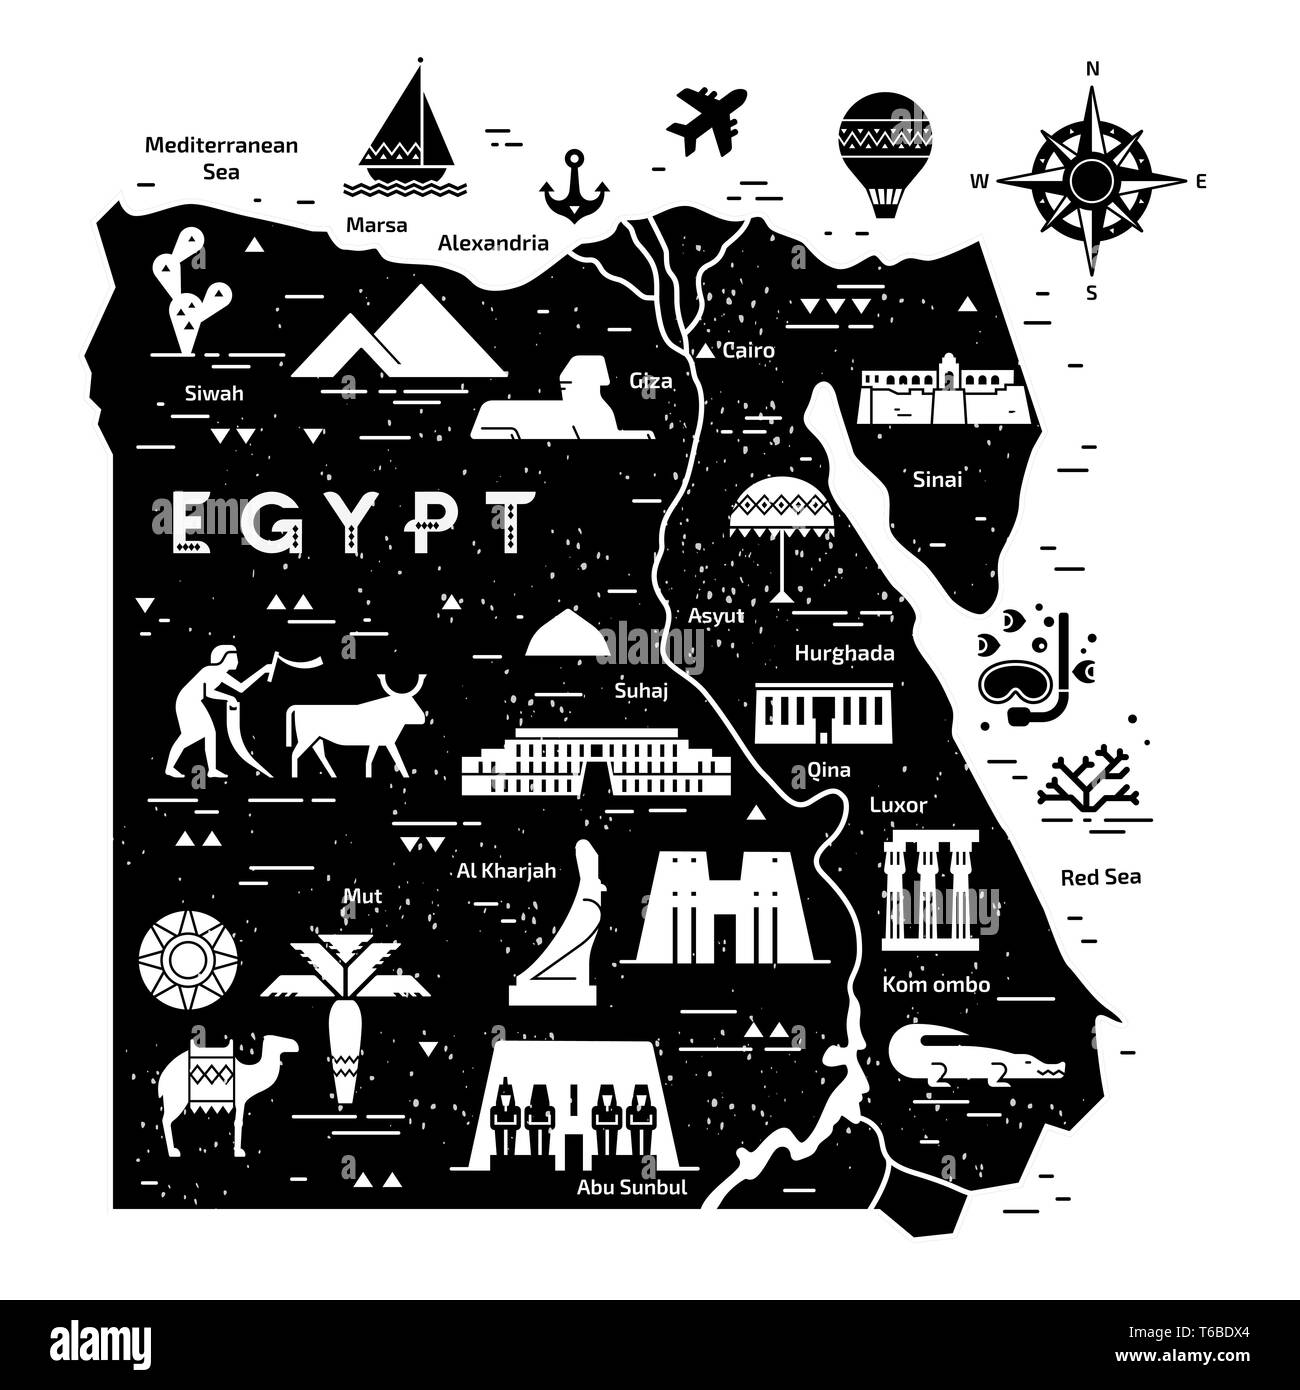 5ddcd2f00f071 Outline and silhouette map of Egypt - vector illustration hand drawn with  black lines, isolated